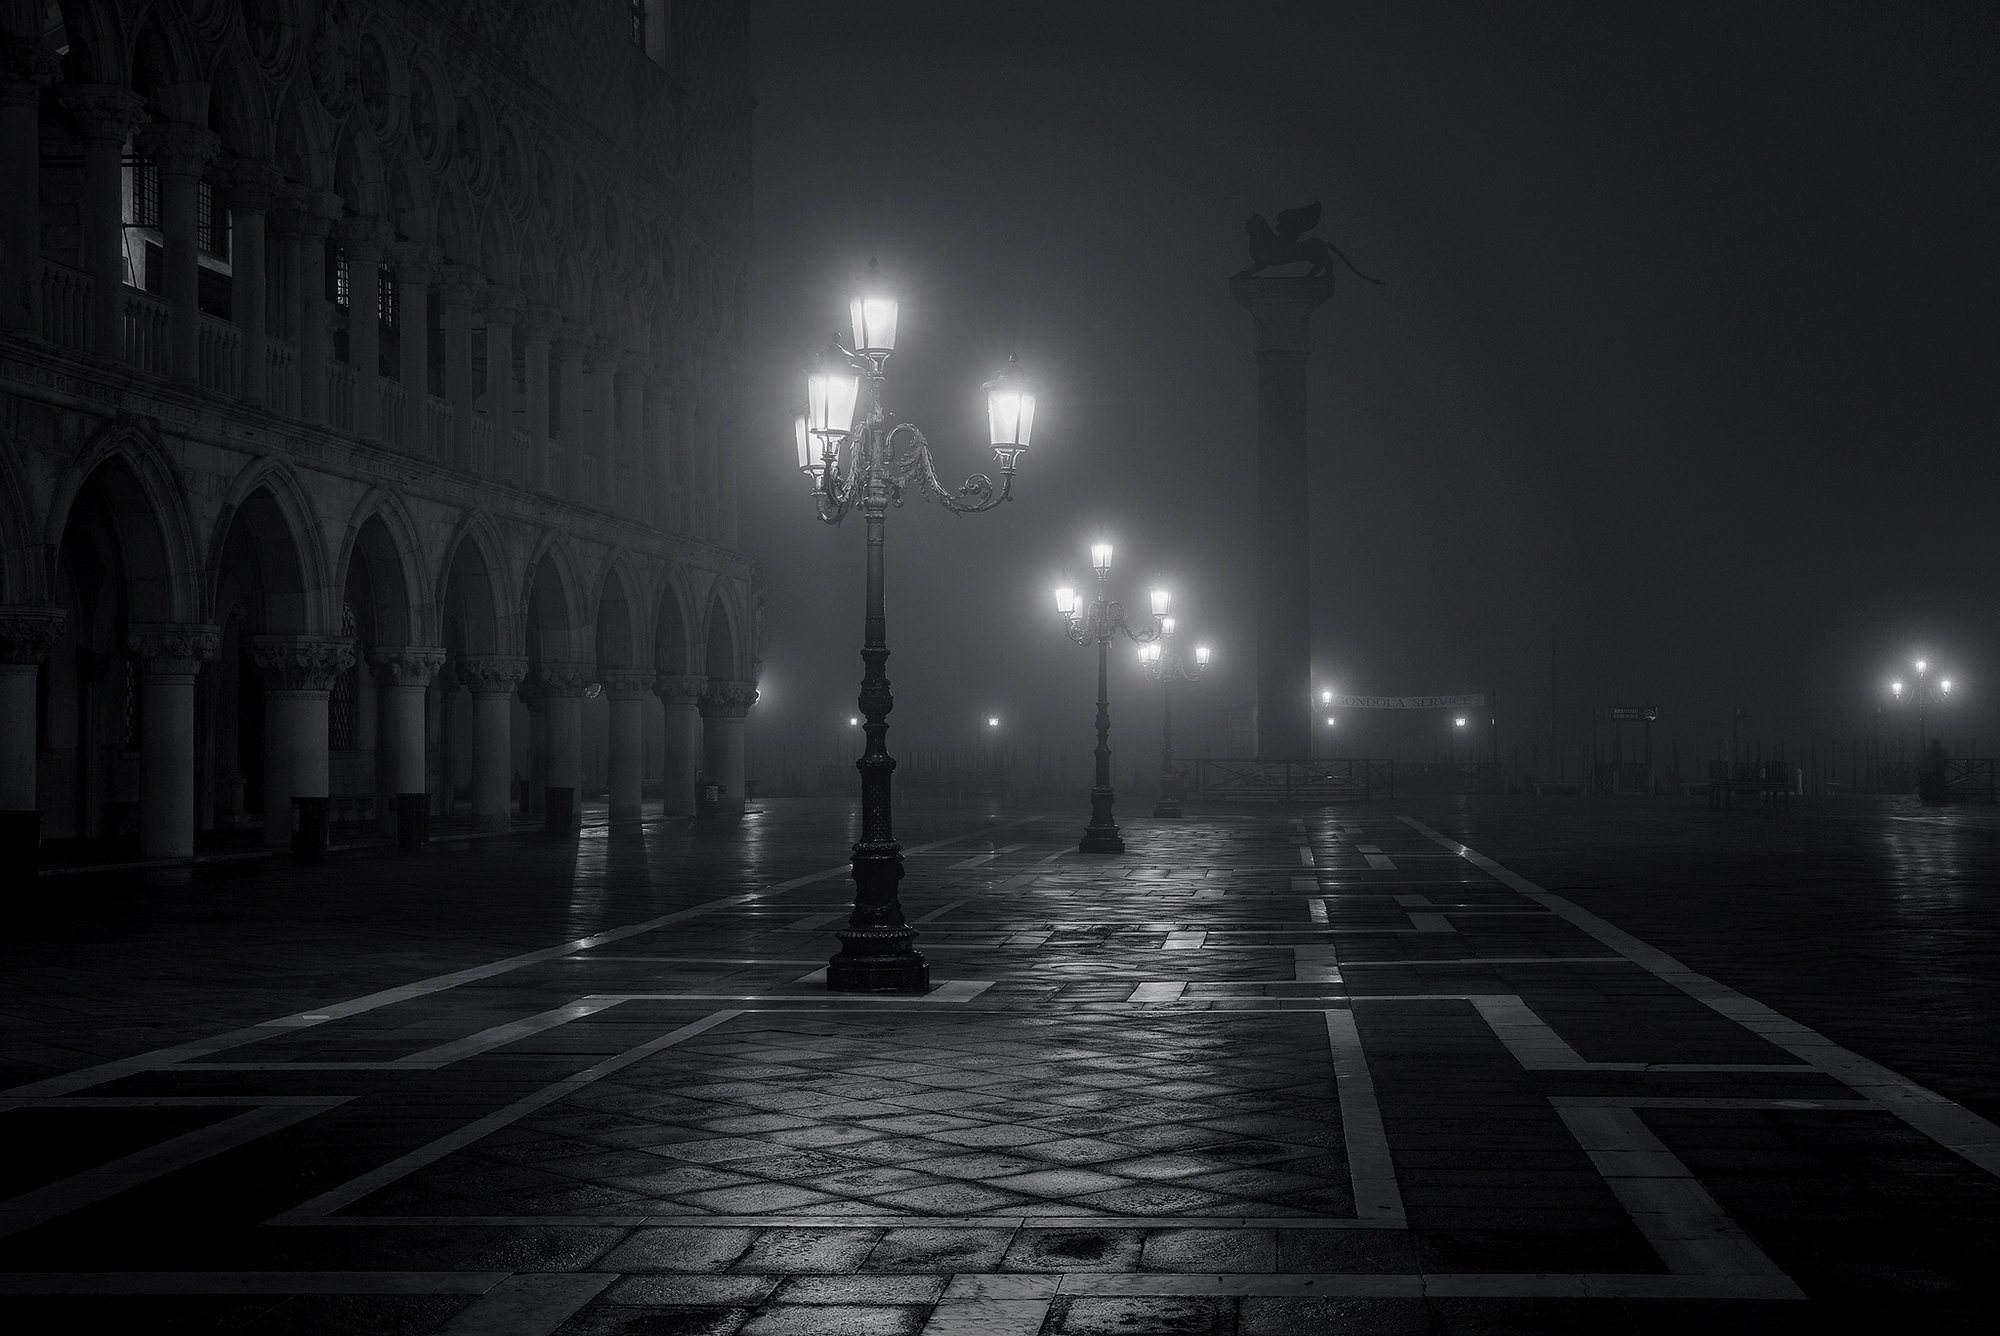 Must see Wallpaper Night Black And White - 351235  HD.jpg